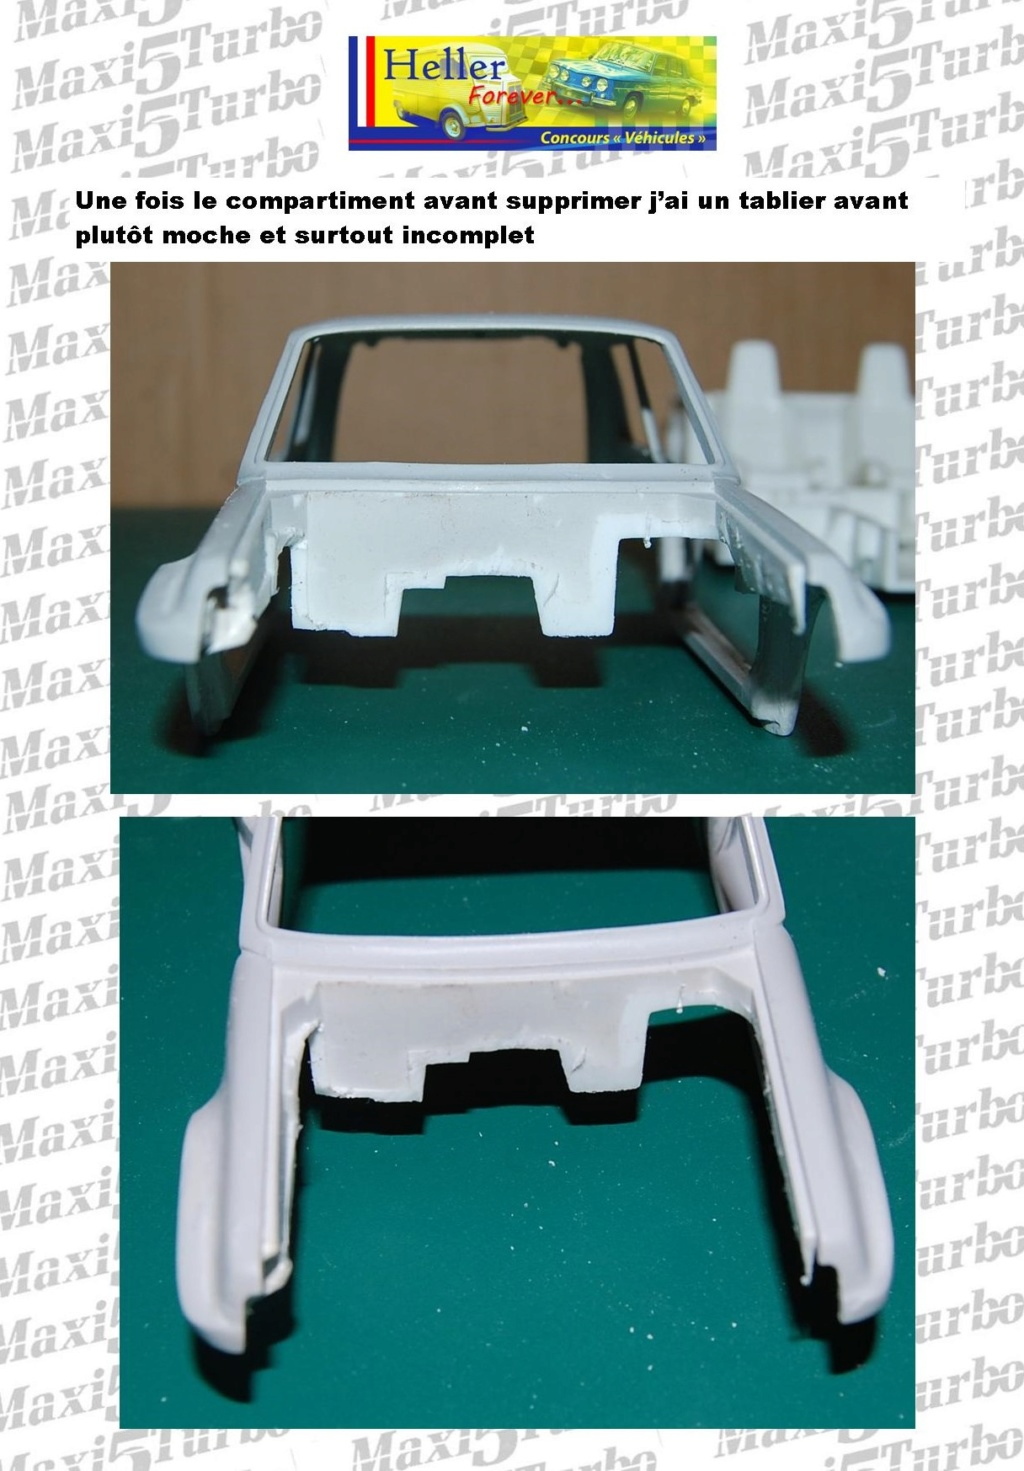 (1/24) Renault 5 Maxi turbo Ref 80717 ( Hors delai ) - Page 7 10810